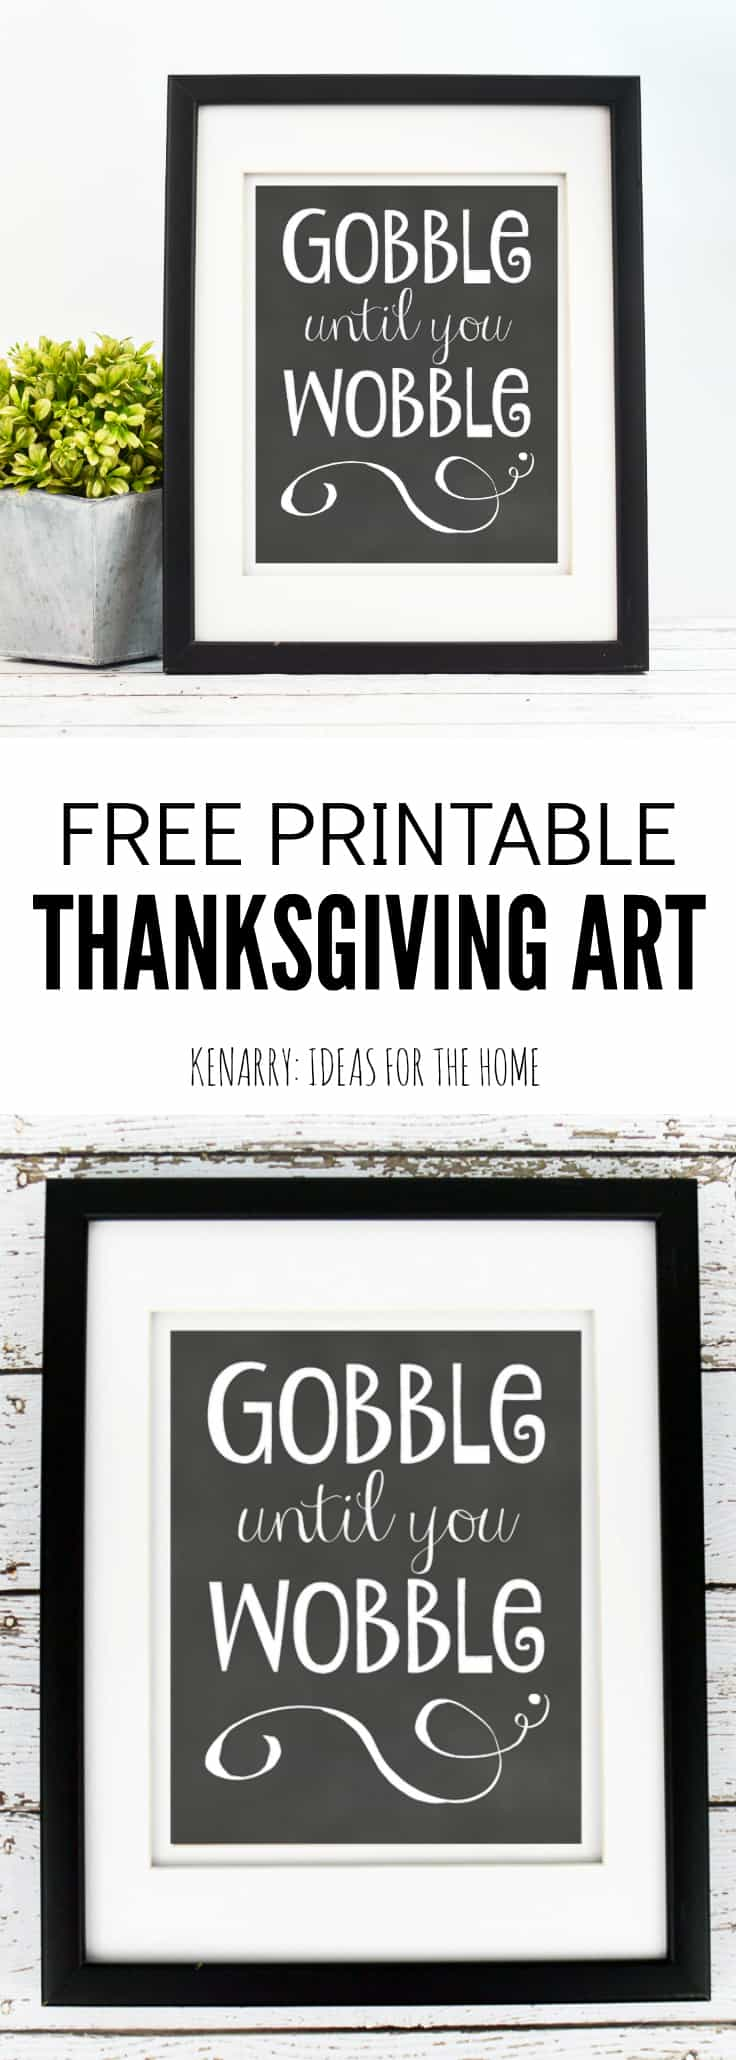 Eat, drink and be festive with this beautiful black and white Thanksgiving decor in your kitchen or dining room. This free printable art from Kenarry.com will encourage you to Gobble Until You Wobble. #thanksgiving #freeprintable #fall #thanksgivingdecor #falldecor #kenarry